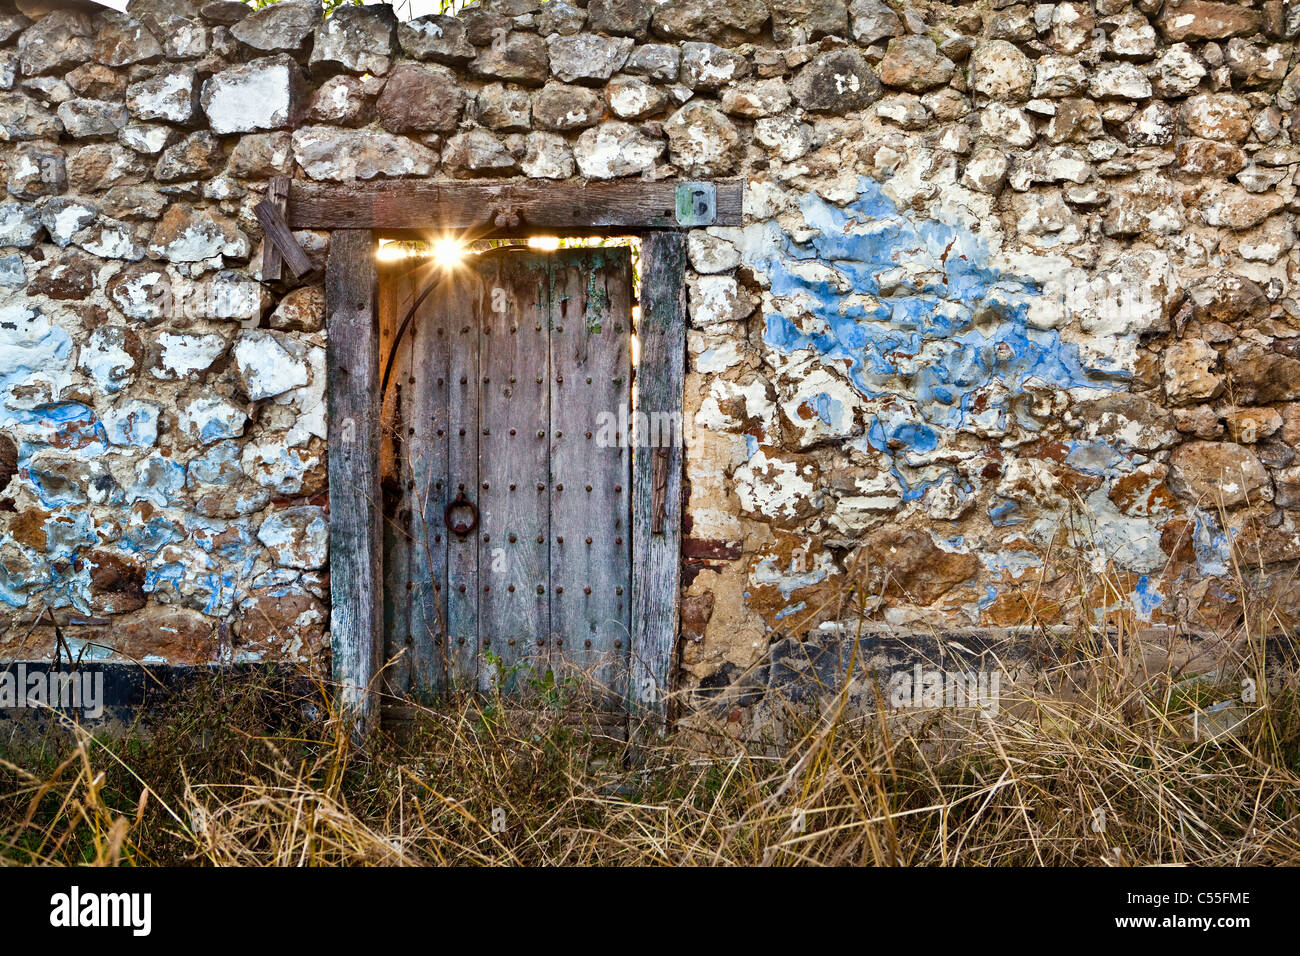 The Netherlands, Epen, Sun shining through door of run-down house. - Stock Image